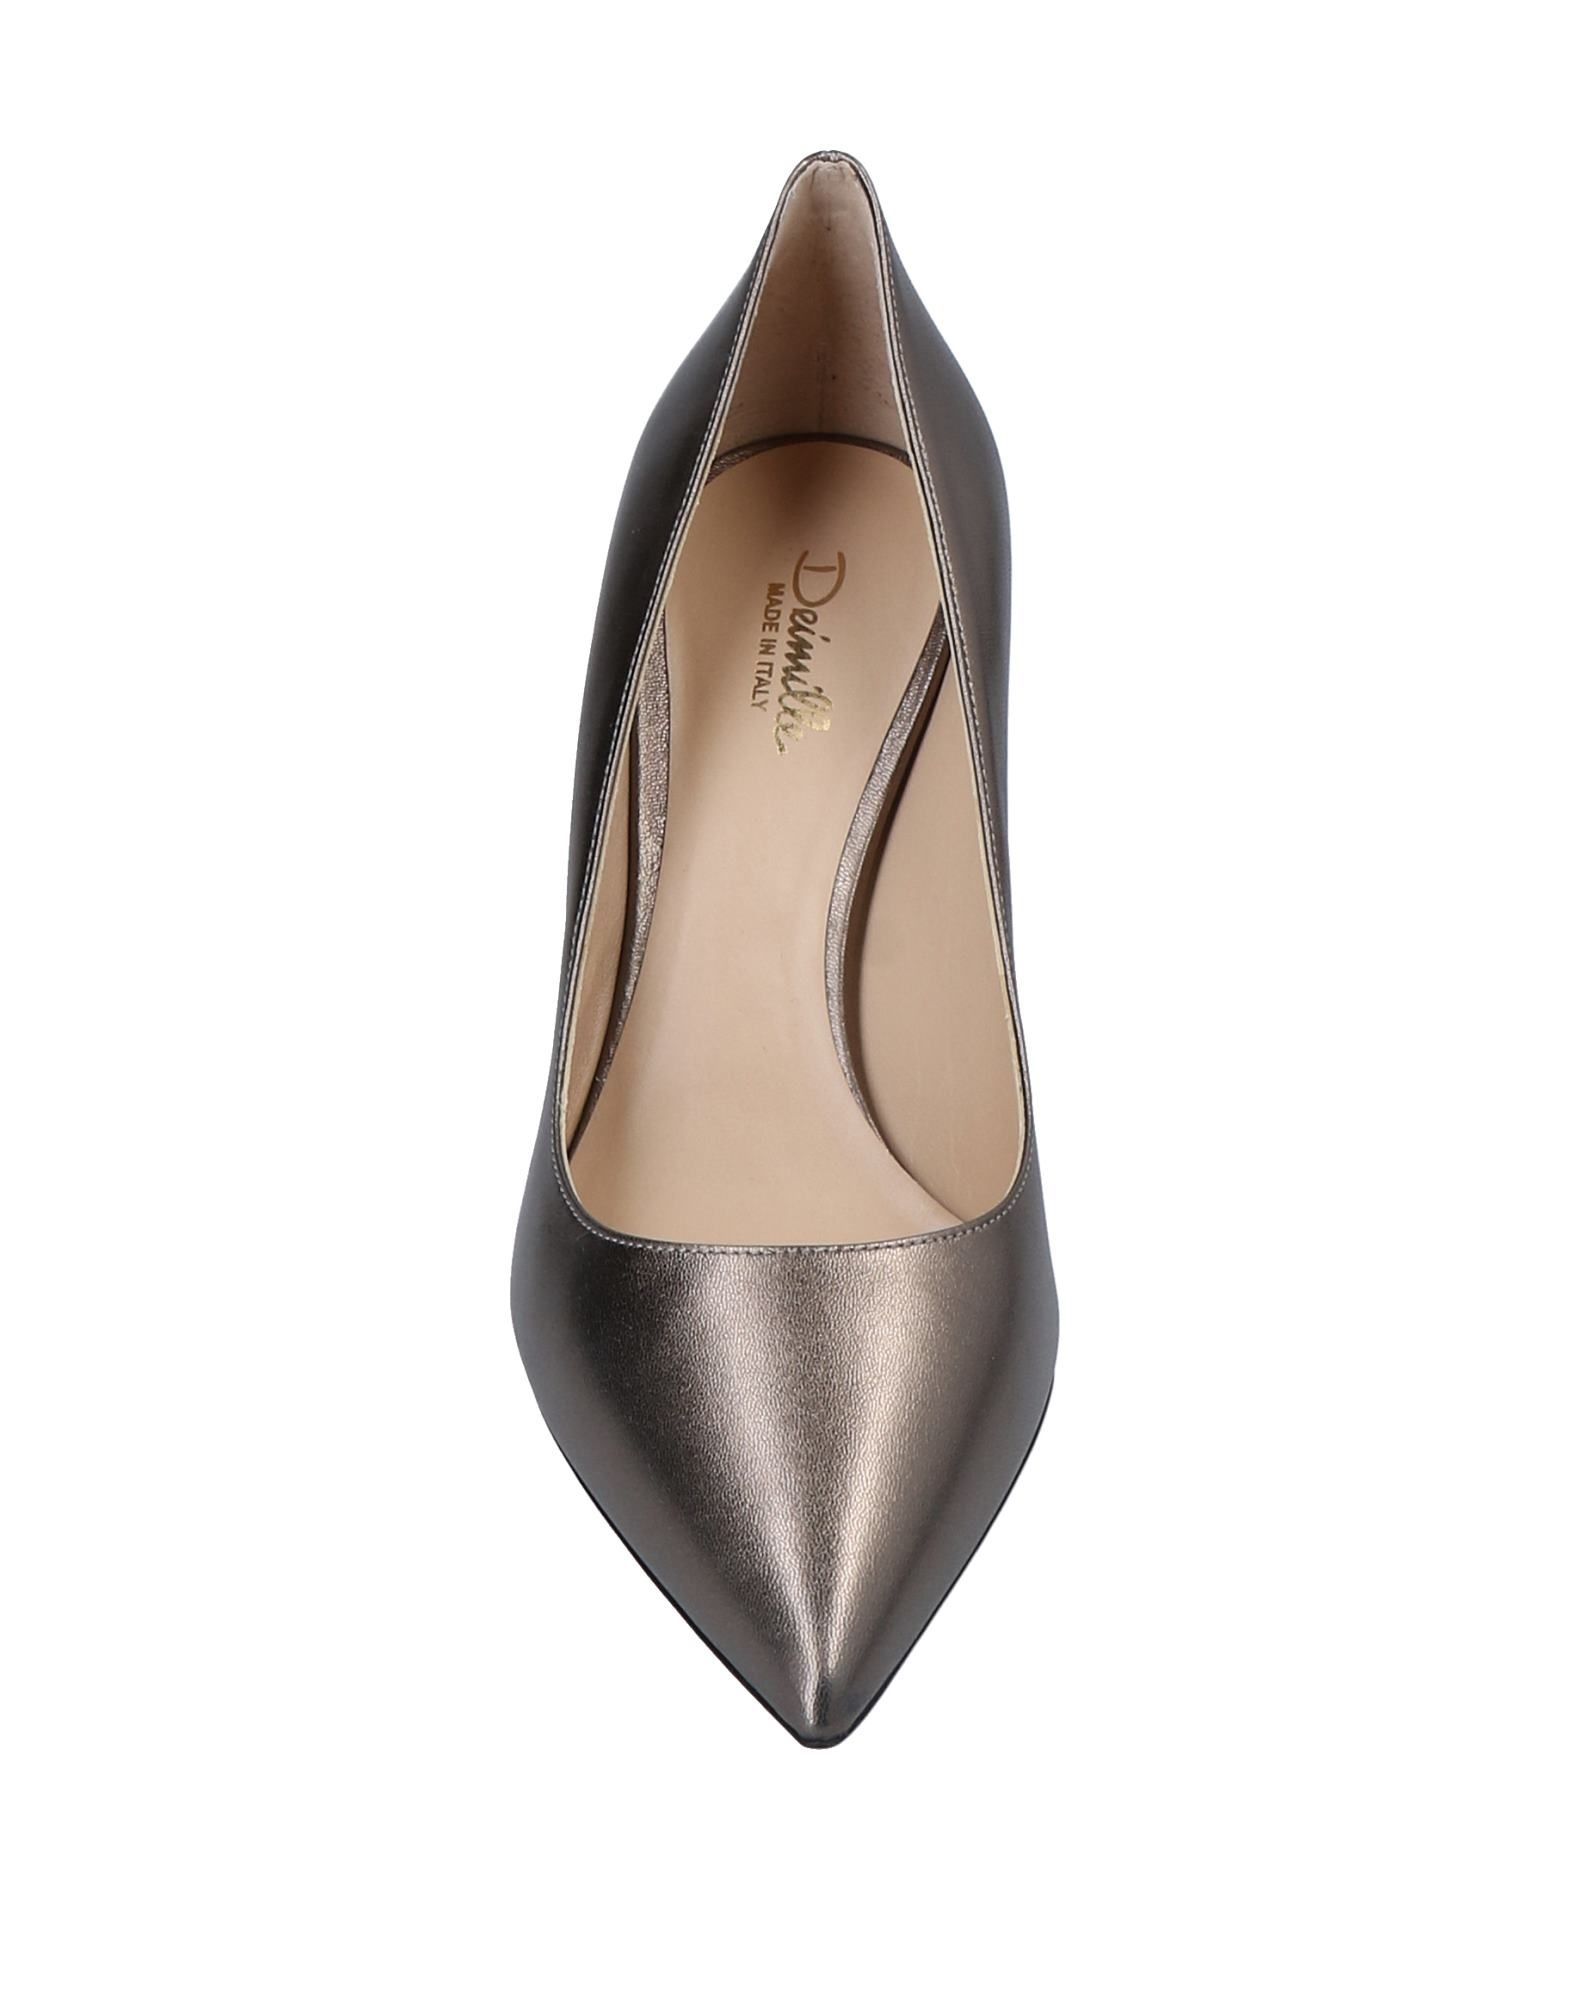 Stilvolle Damen billige Schuhe Deimille Pumps Damen Stilvolle  11551955UR 9f8247